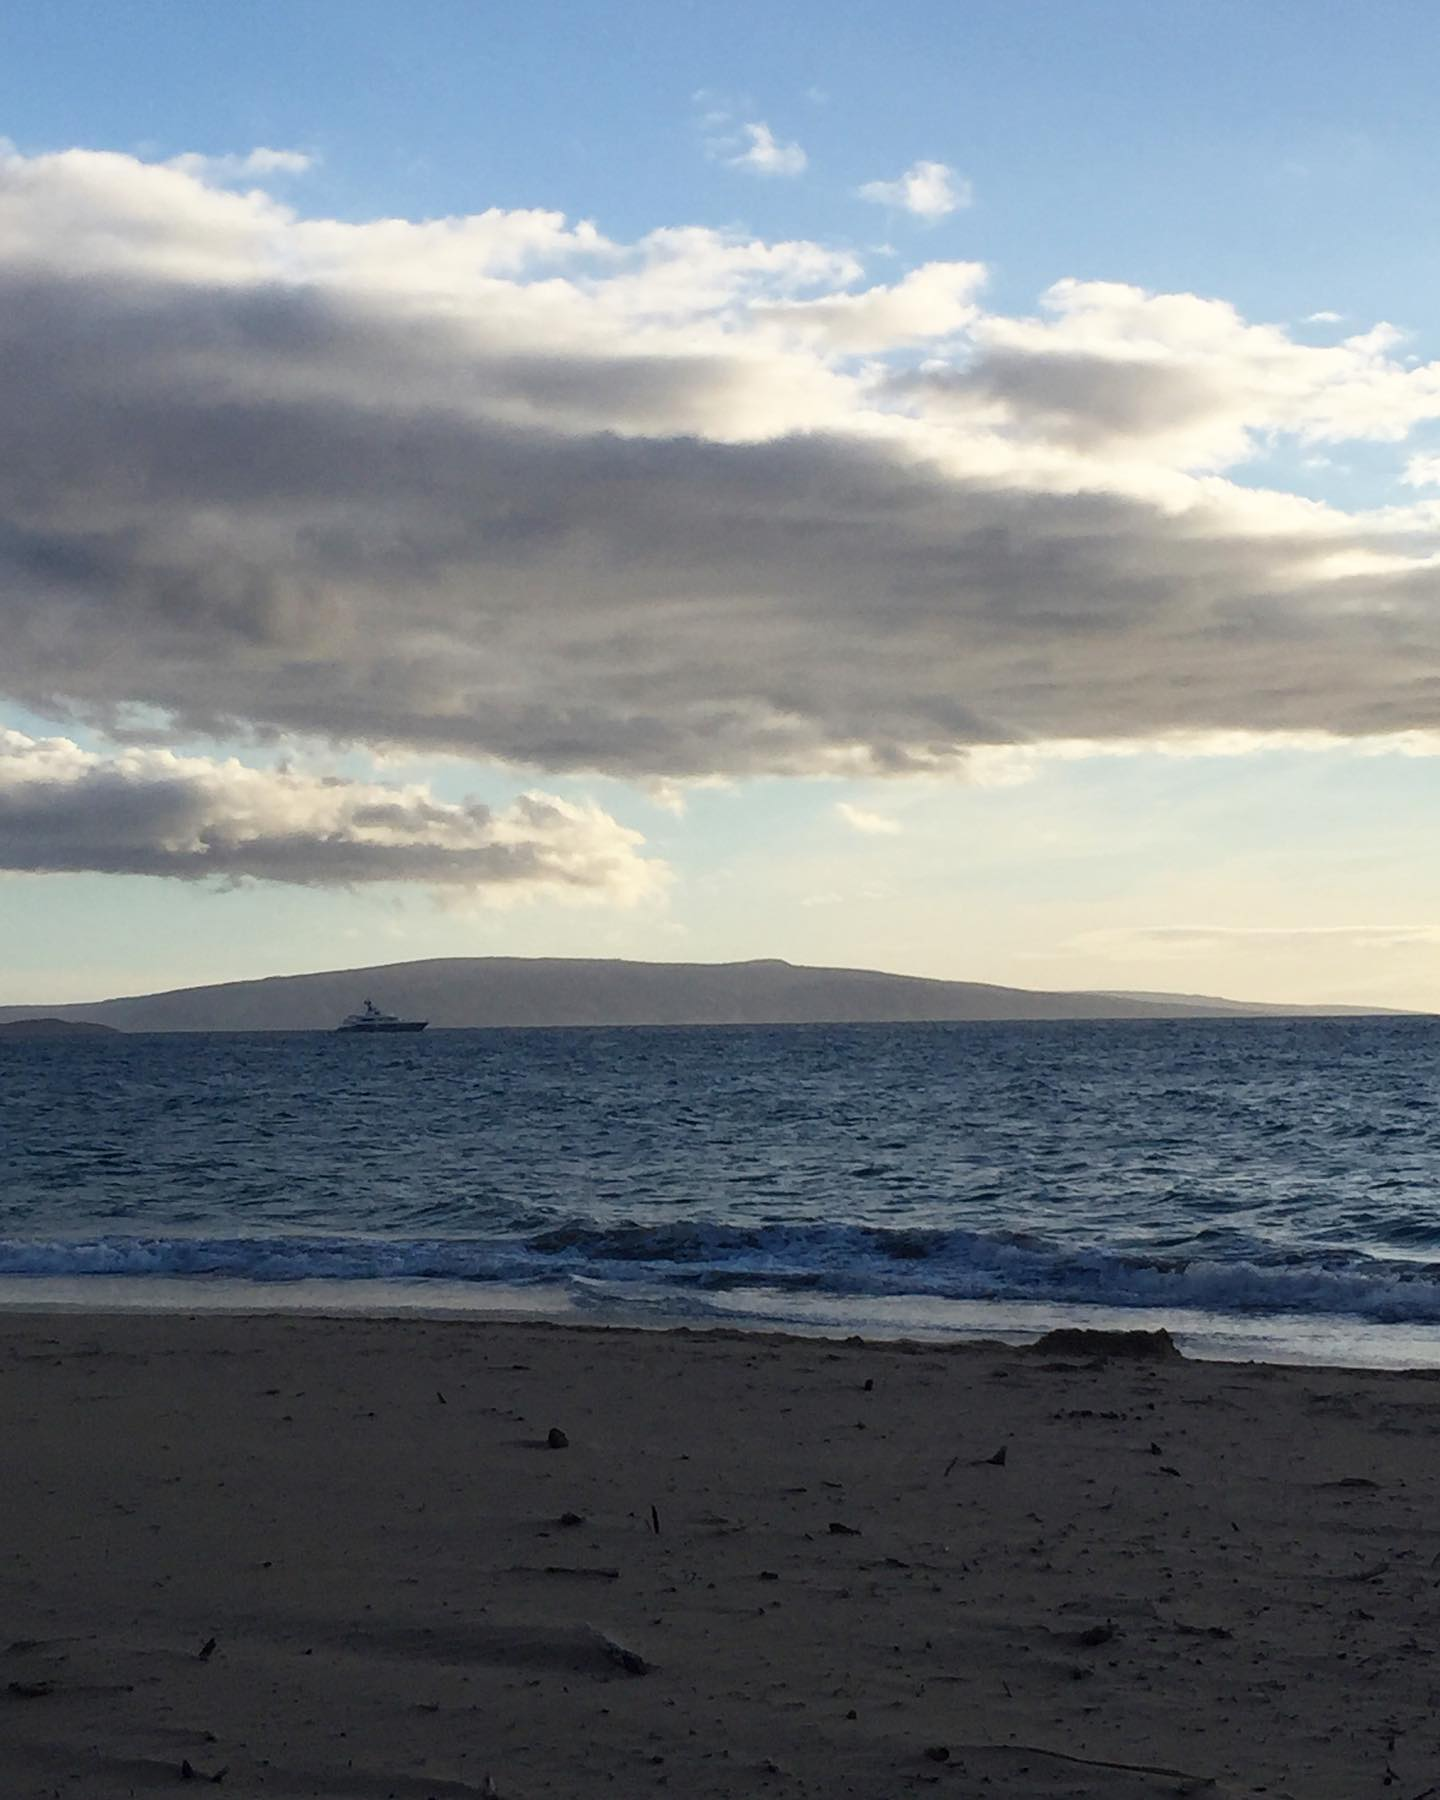 Sky, clouds, sky, island in the distance, ocean, sand. So many layers in this shot, kind of like those artsy sand layers in a bottle. #ichoosebeauty Day 2879